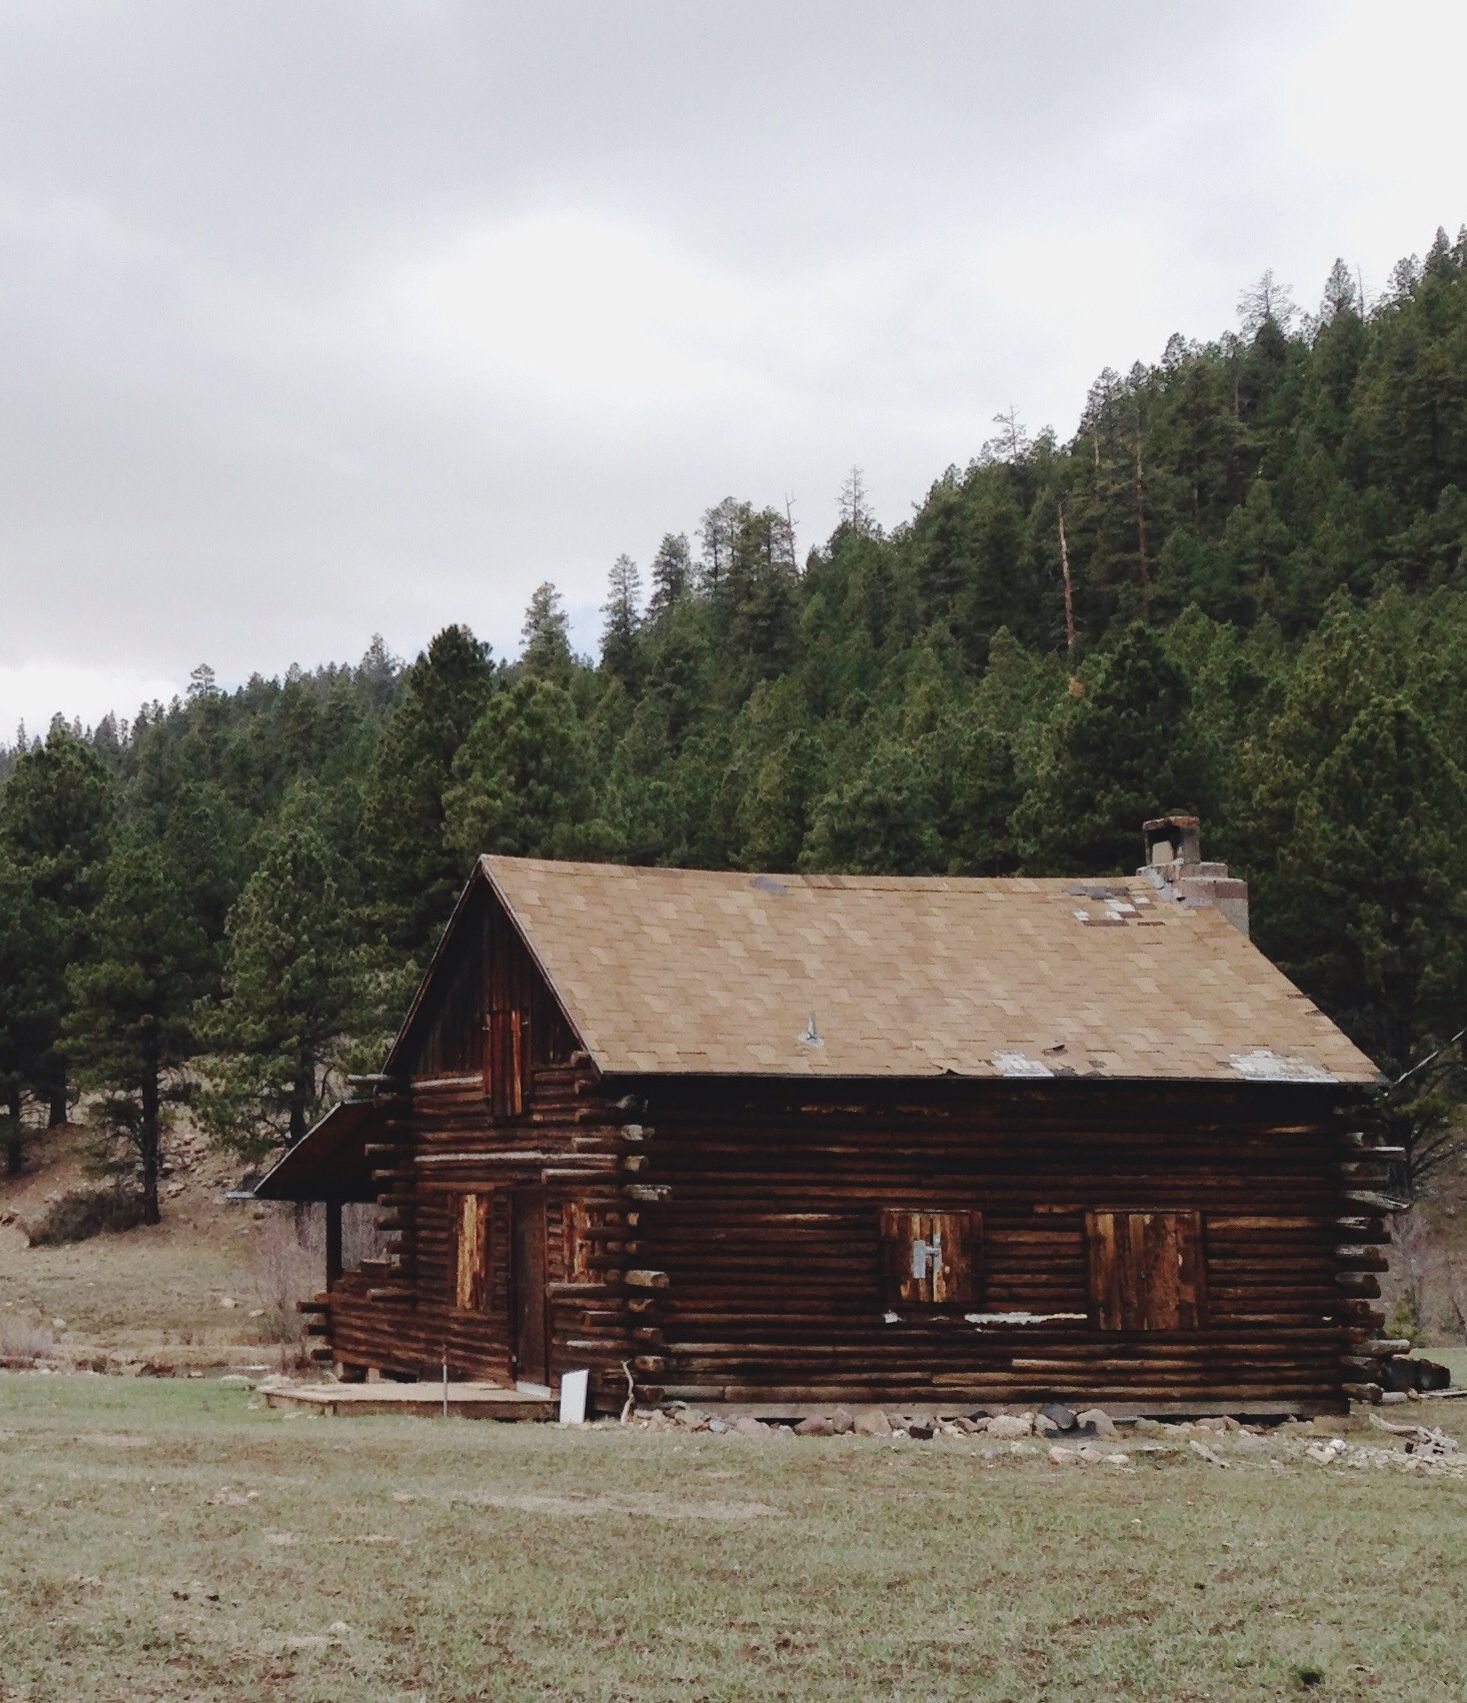 Camping Cabins National Forest Nm: Santa Fe National Forest, New Mexico